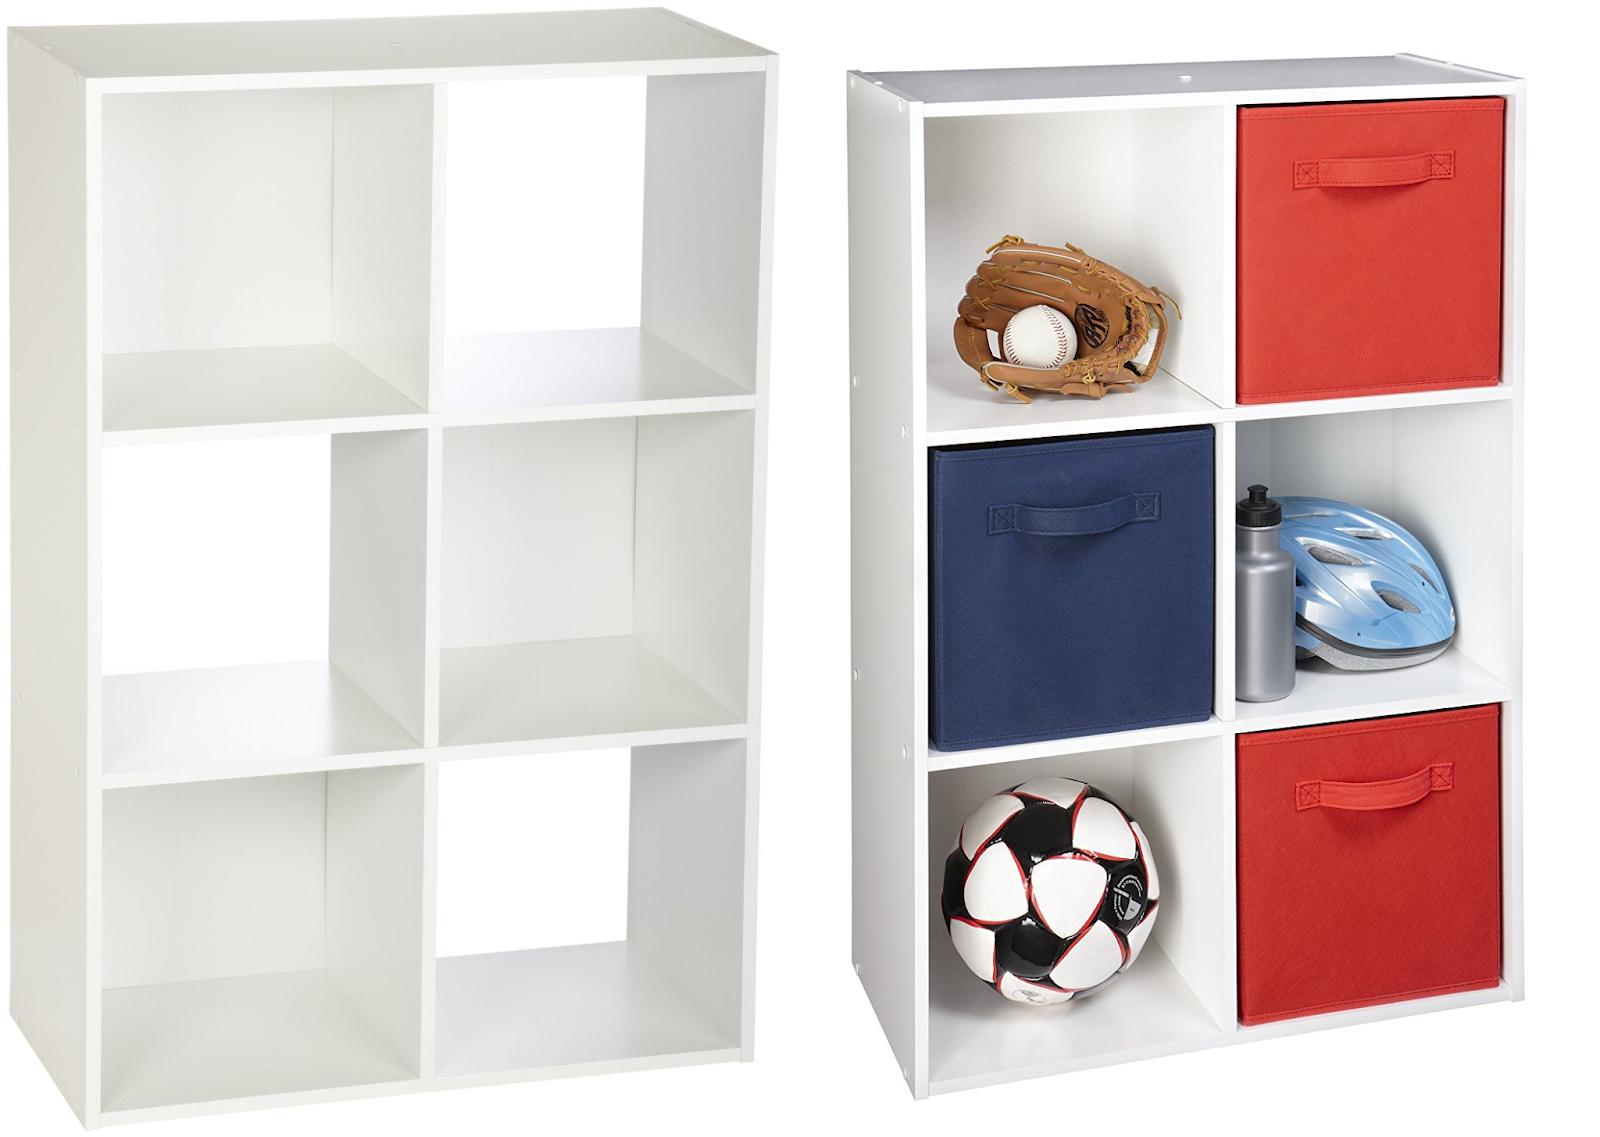 Get This ClosetMaid 6 Cube Organizer In Color White On Sale For $26.97  (Reg. $46) Over At Amazon Or Walmart. This 6 Cube Organizer Is Easy To  Assemble And ...